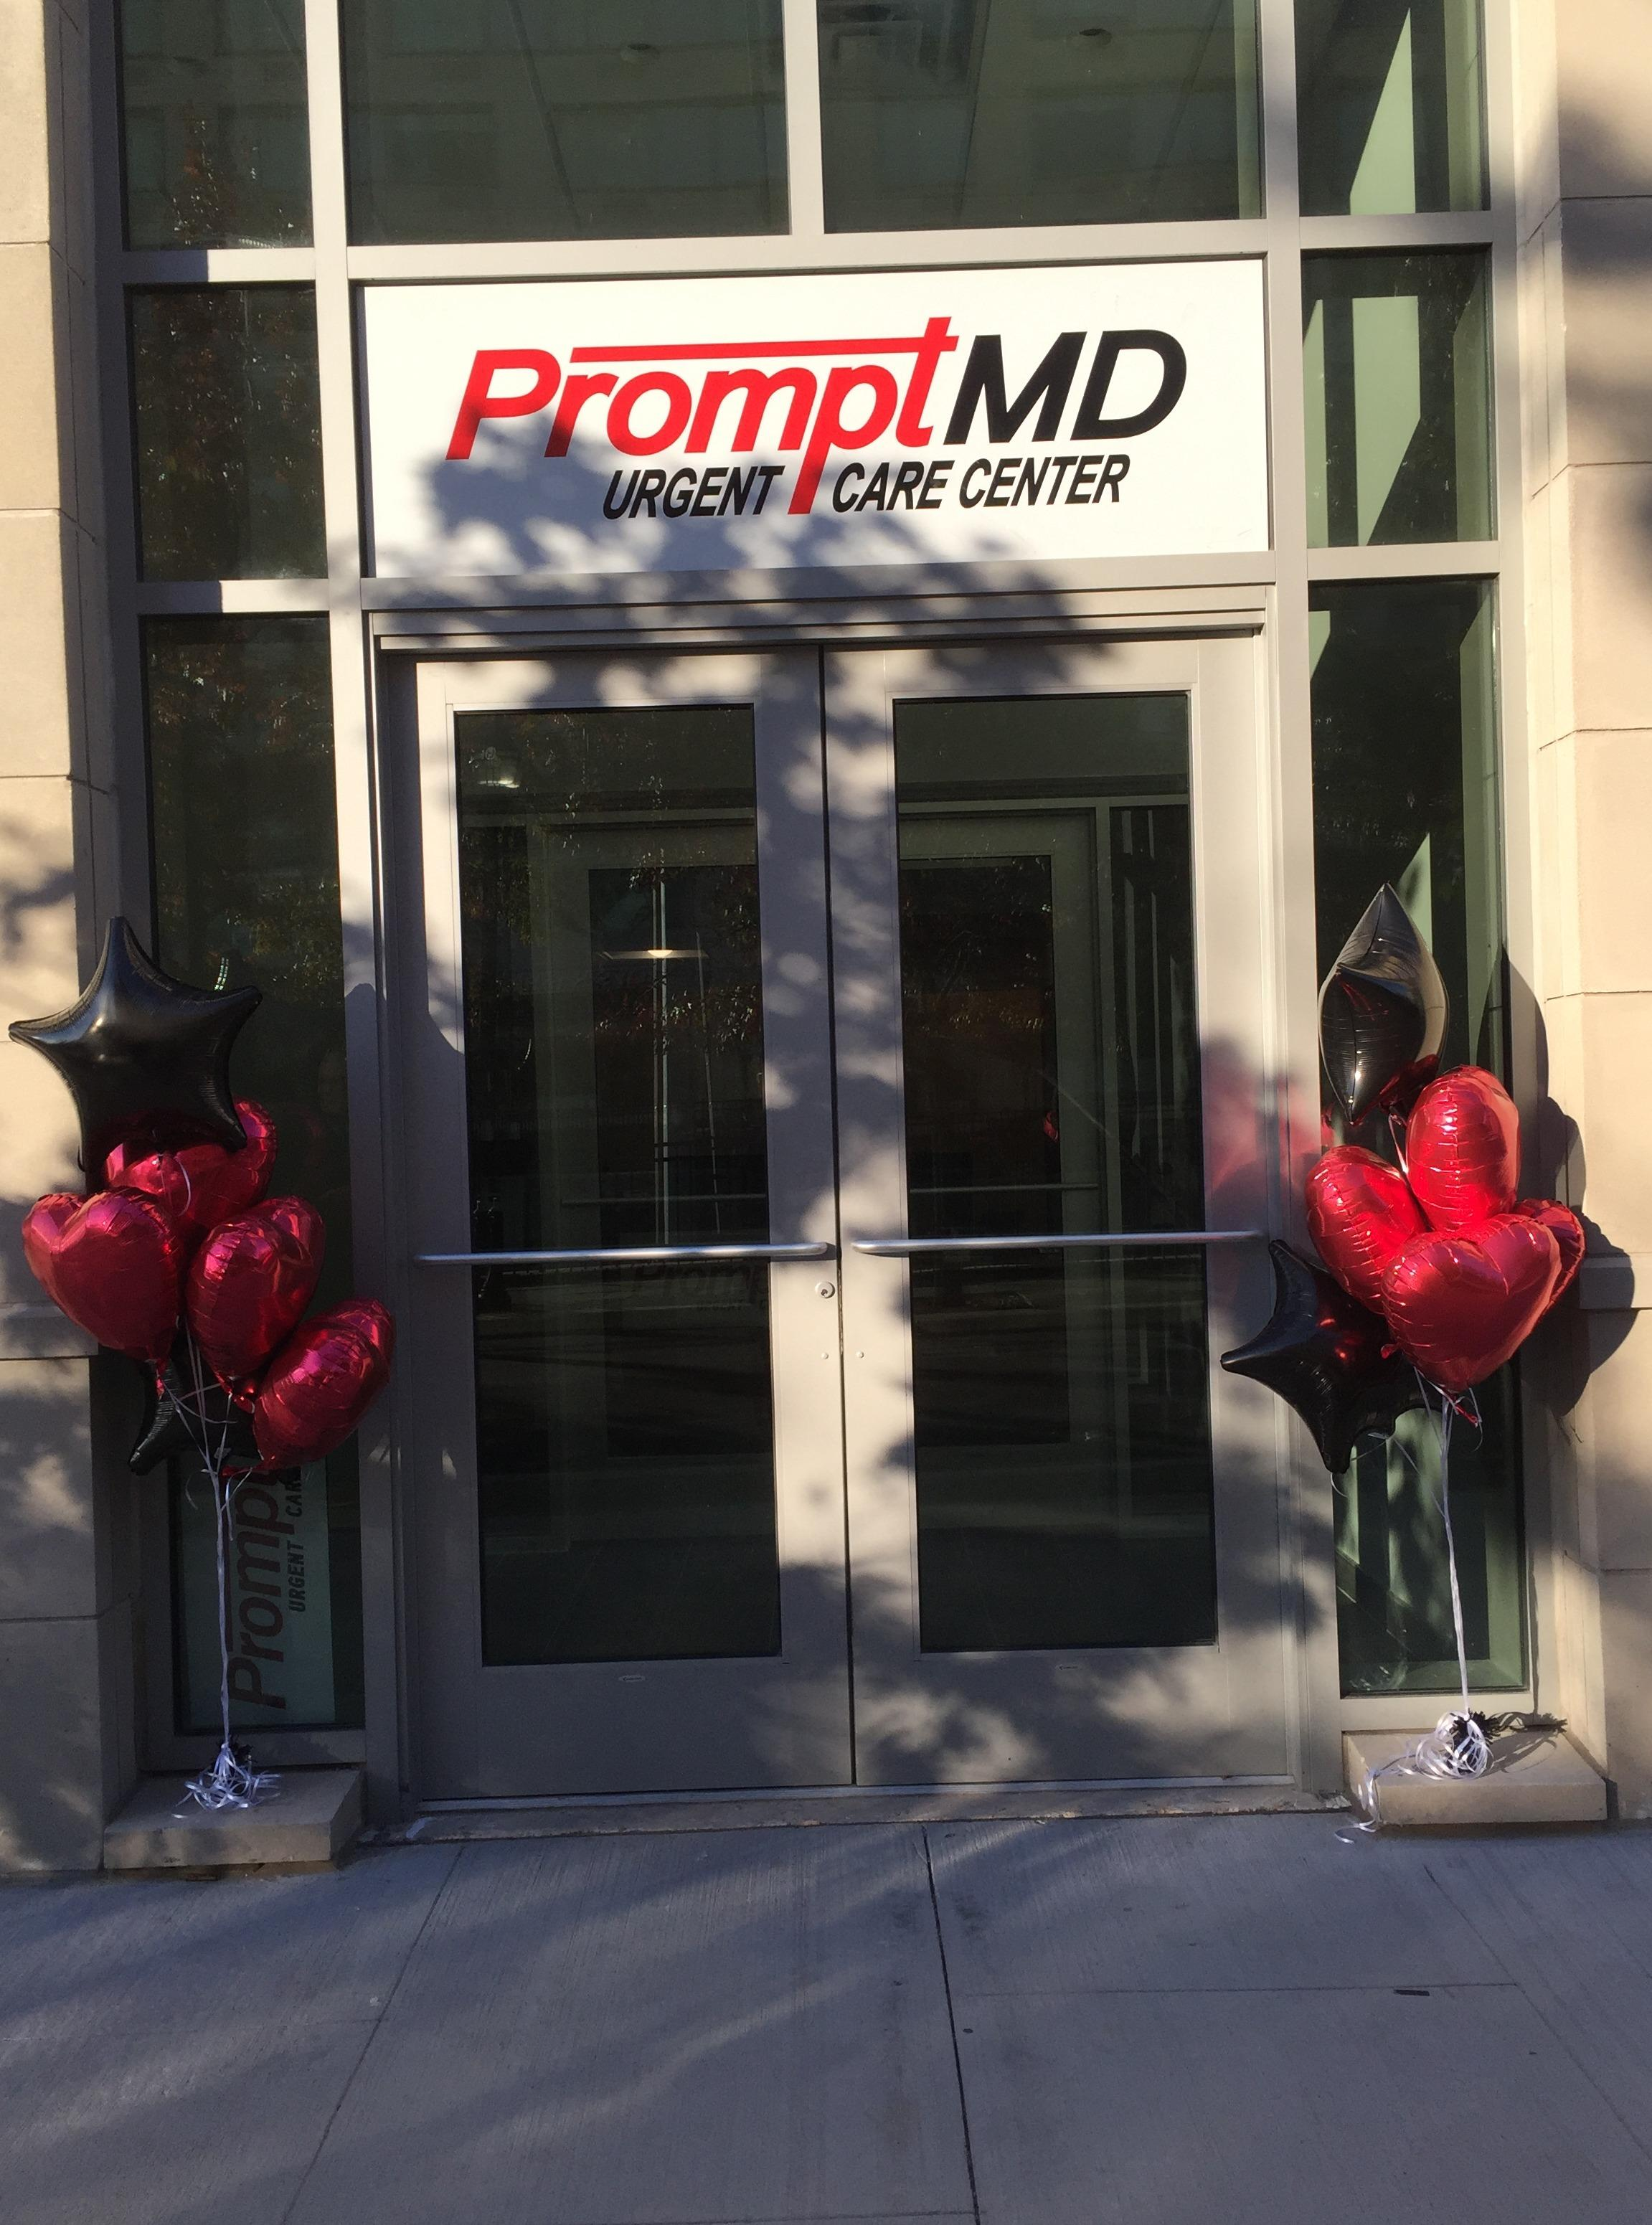 PromptMD Urgent Care Center Jersey City image 4